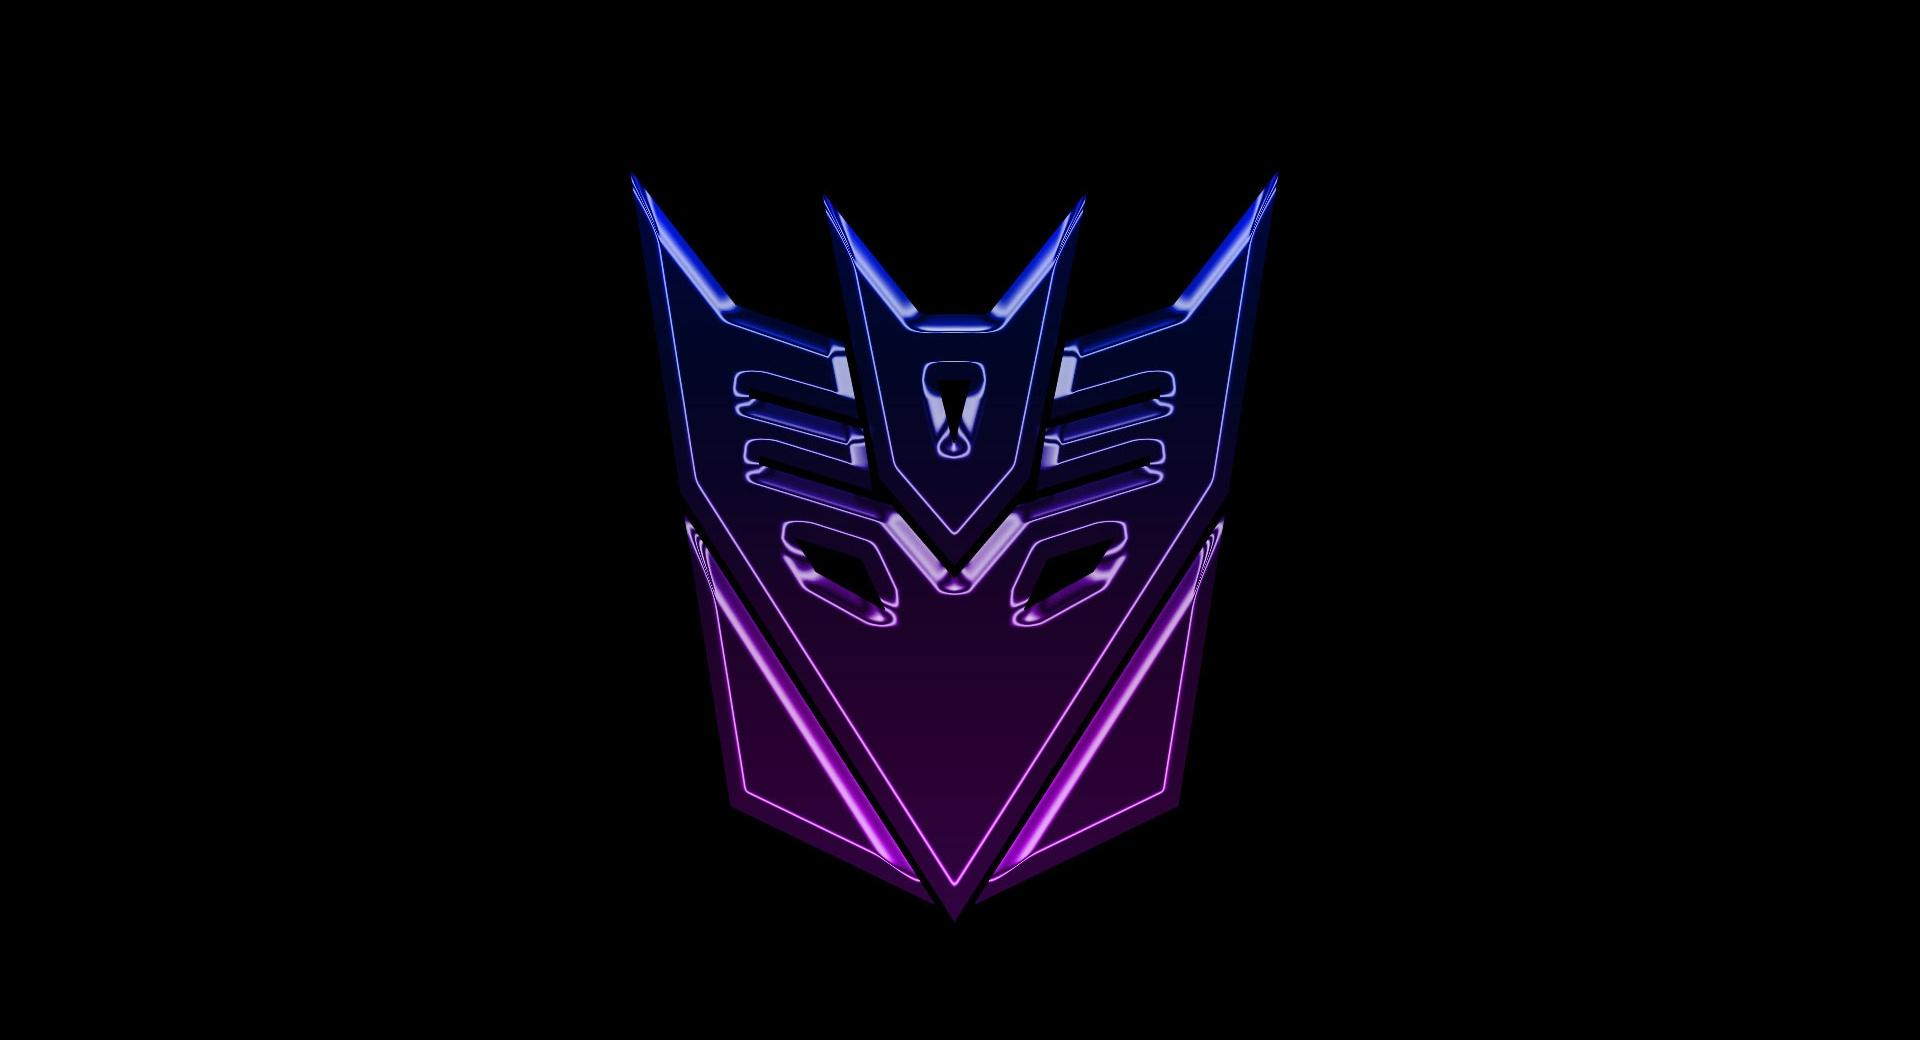 Transformers Decepticons Logo Widescreen at 1024 x 1024 iPad size wallpapers HD quality